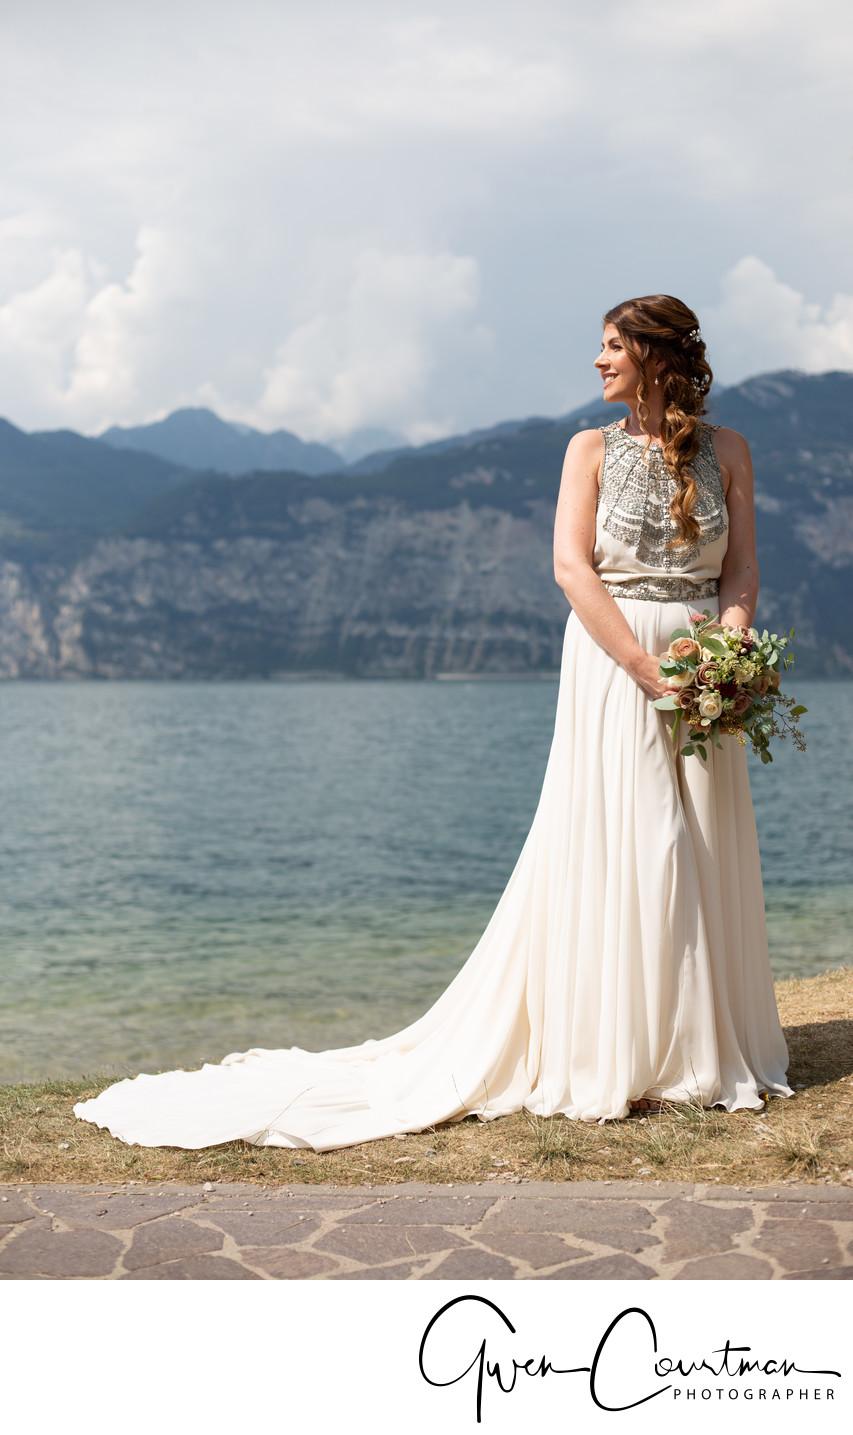 Gemma and Jay Lakeside Wedding, Malcesine, Italy